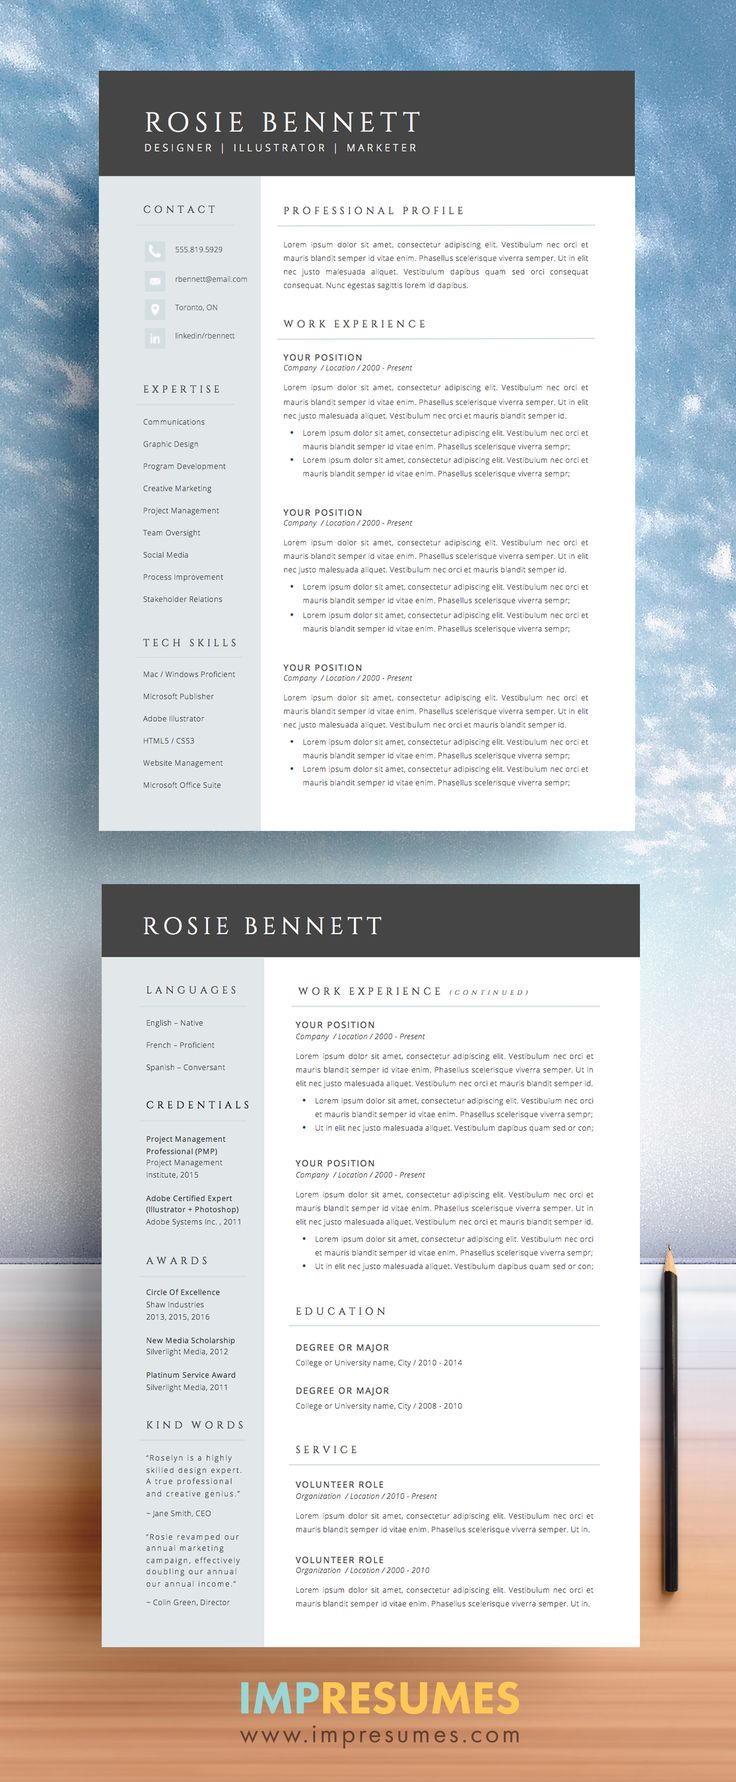 excellent resume formats%0A example of cover letters for job application